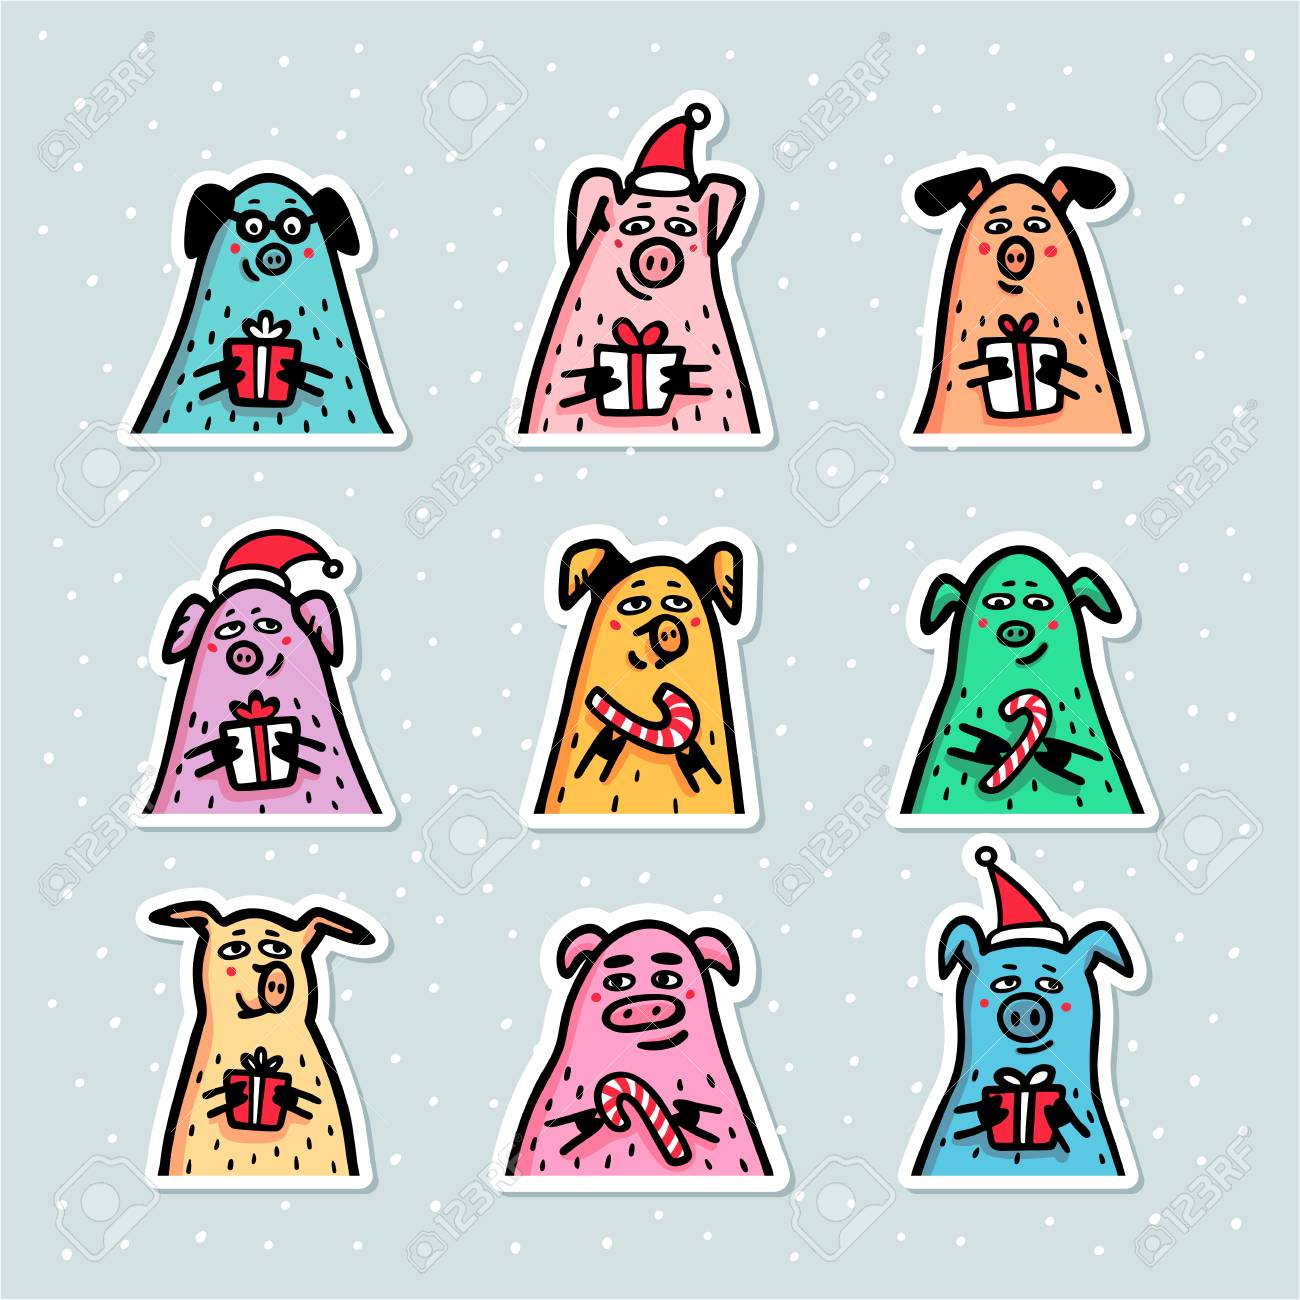 31ad0571fc619 Illustration - Pig stickers set. Funny pigs with candy canes